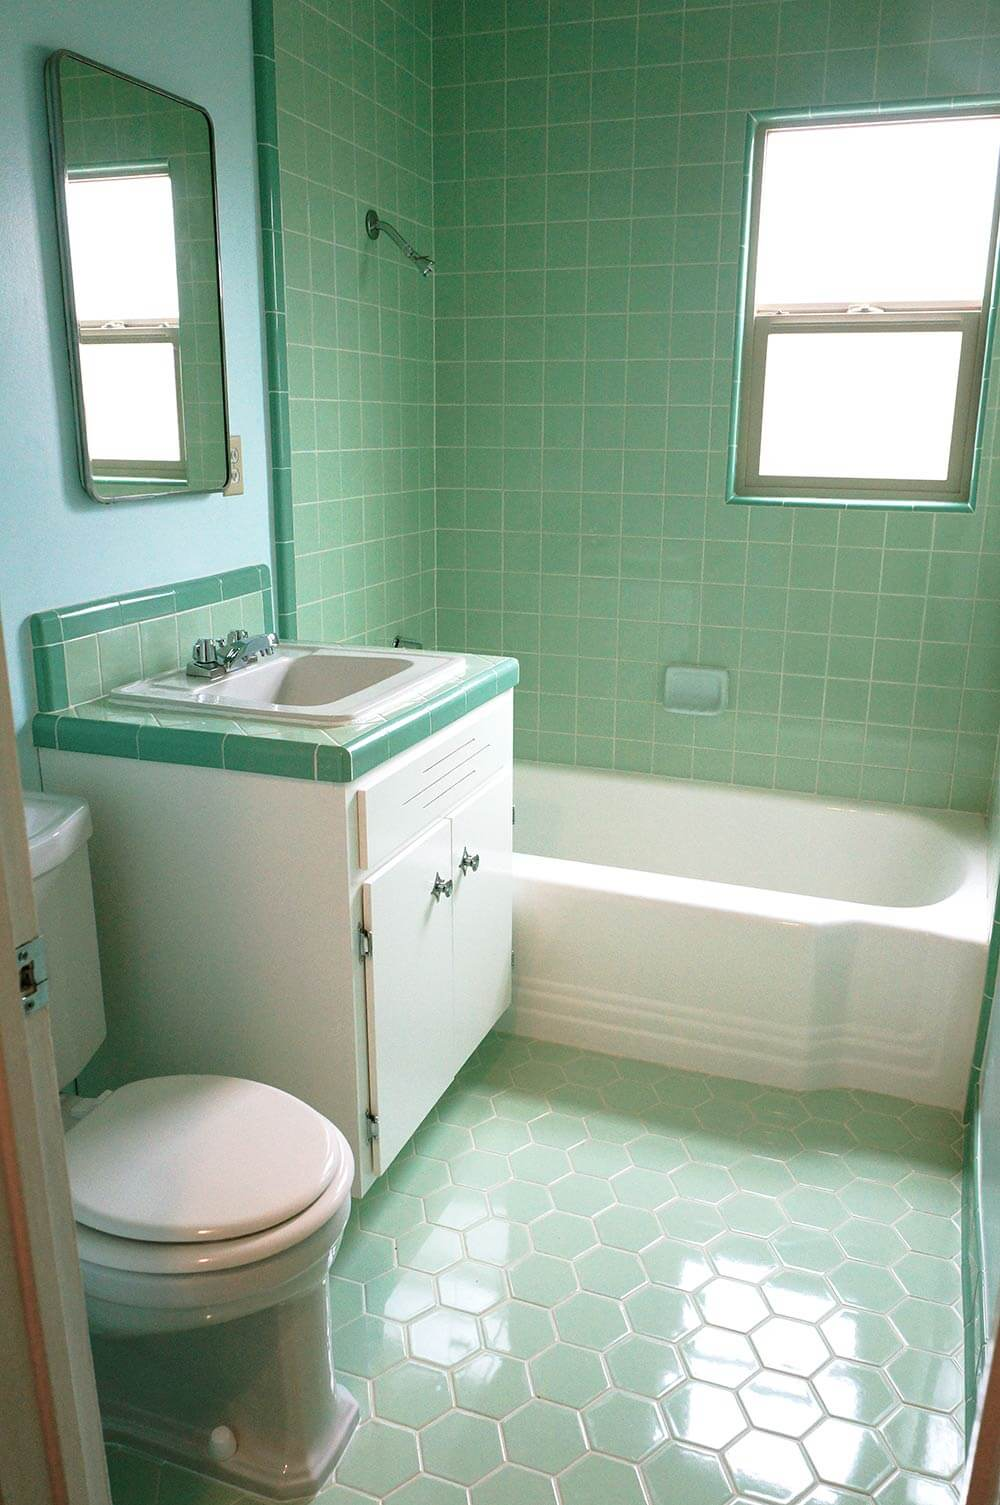 1950s bathroom tile